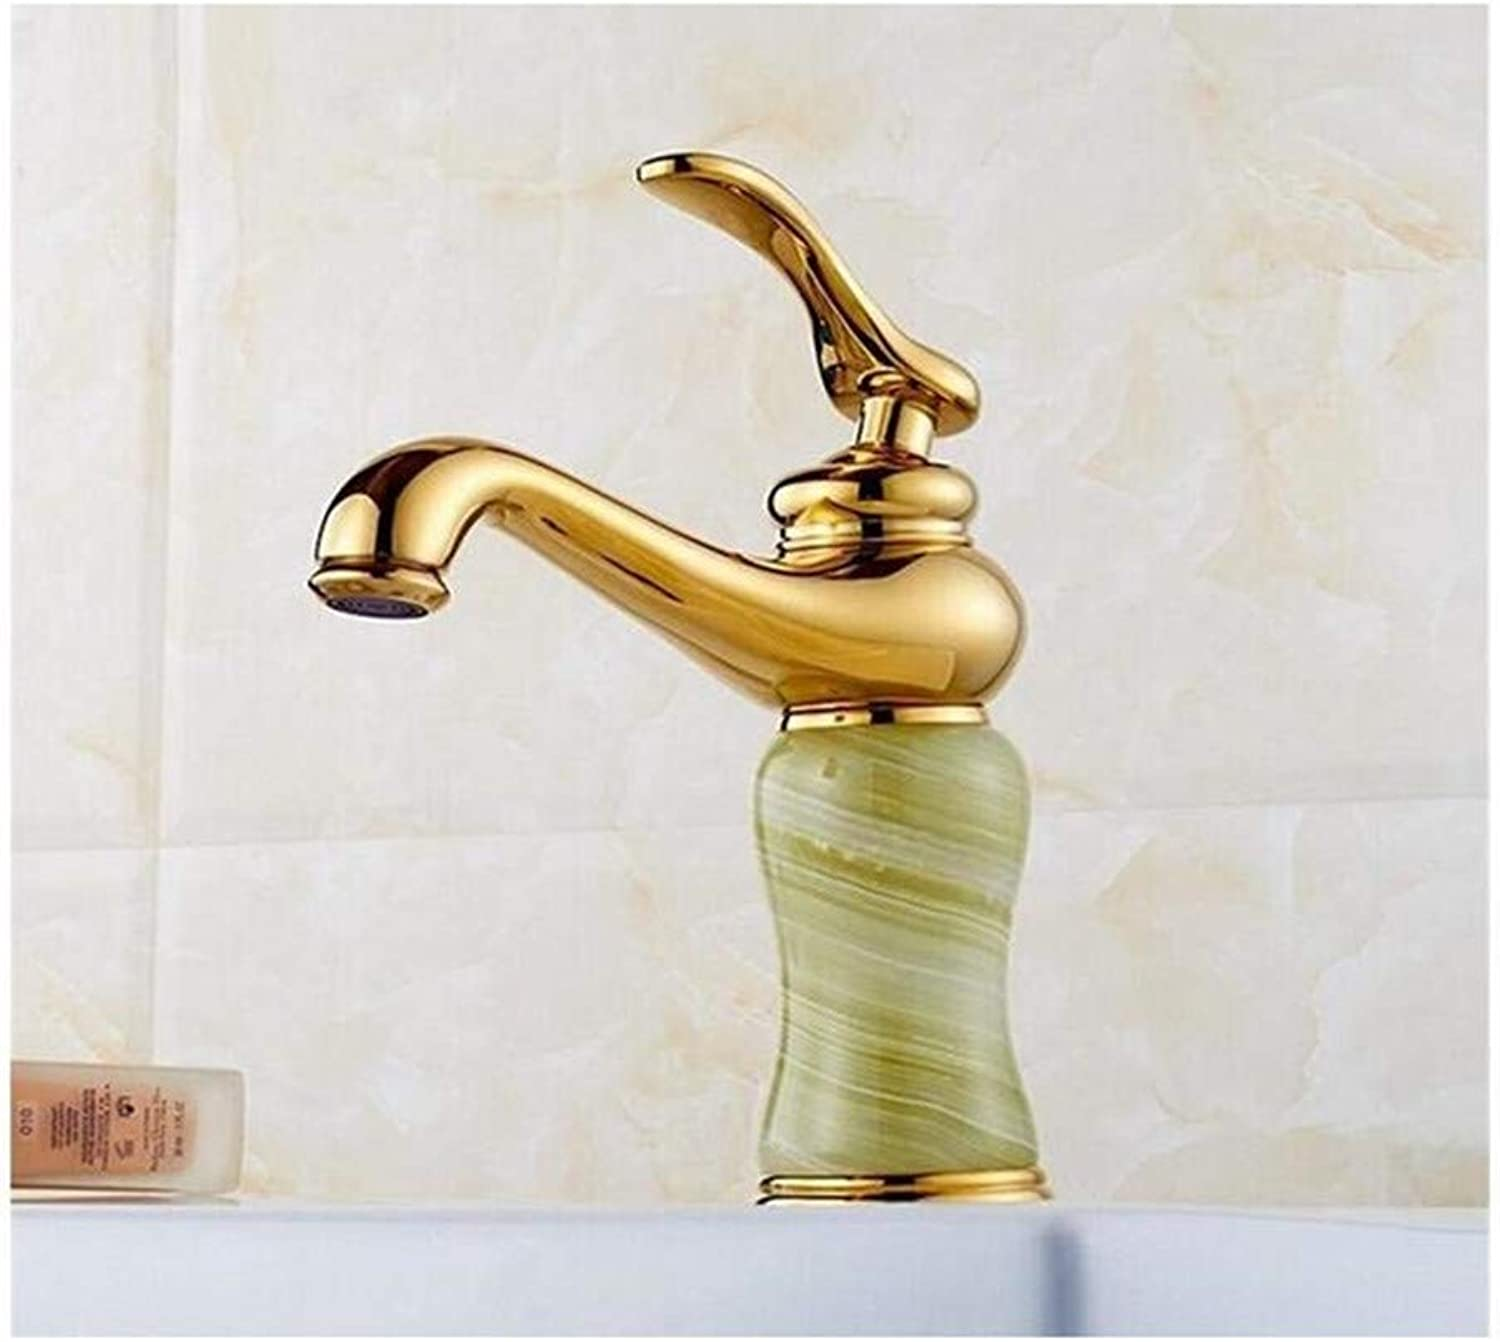 Basin Faucets gold Finish Single Lever Basin Faucet Deck Mount Bathroom Sink Mixer Tap faucet for bathroom, 2